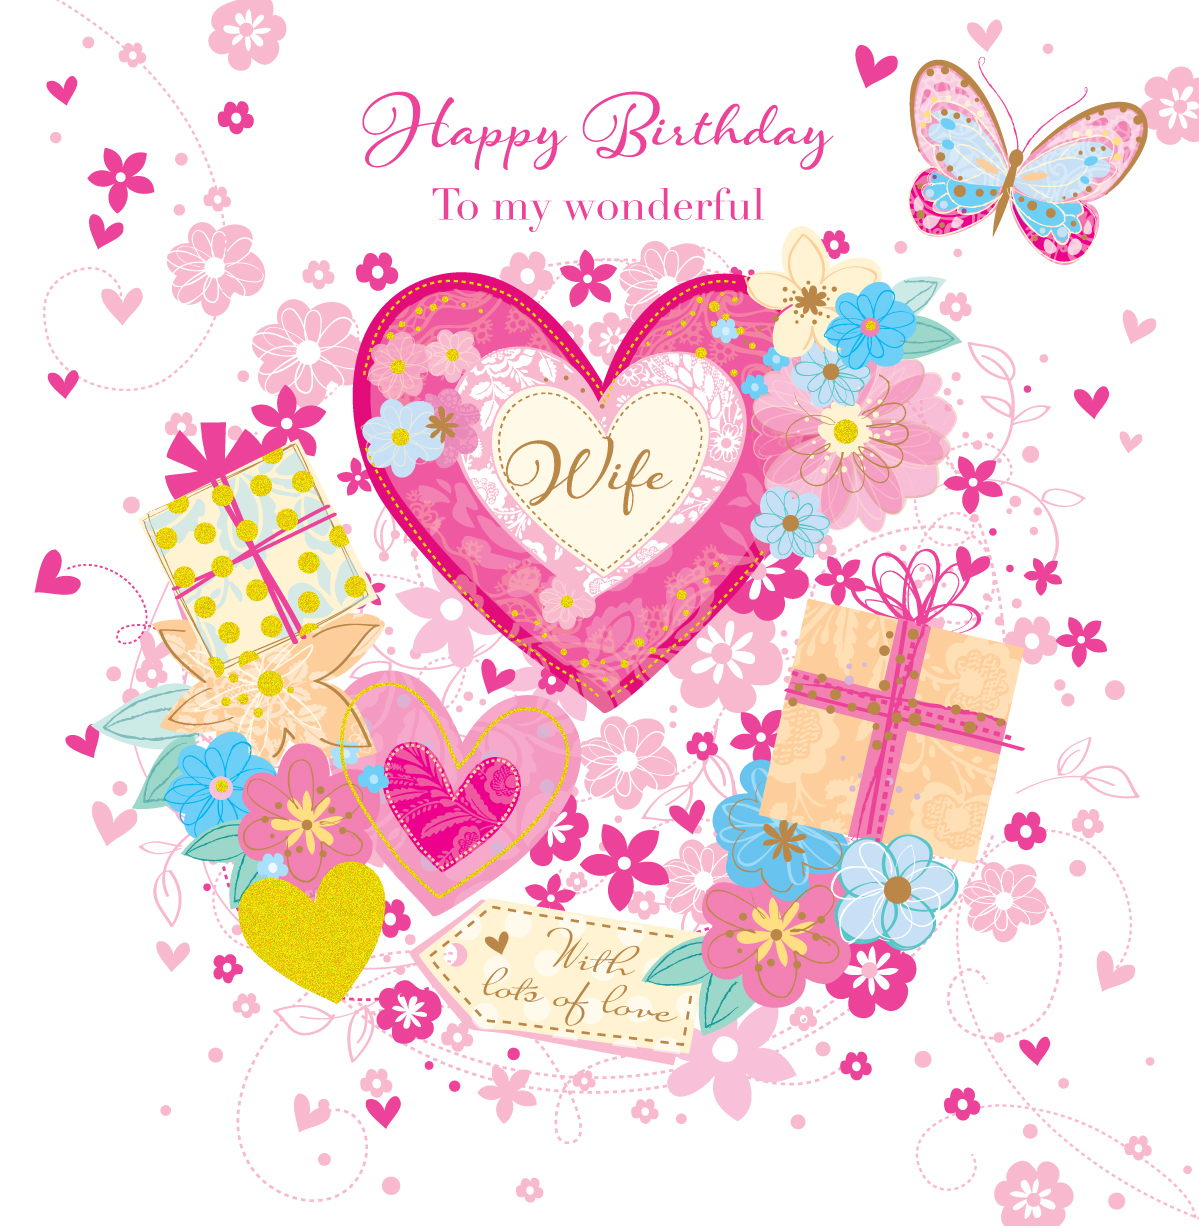 Wonderful Wife Happy Birthday Greeting Card Cards Love Kates